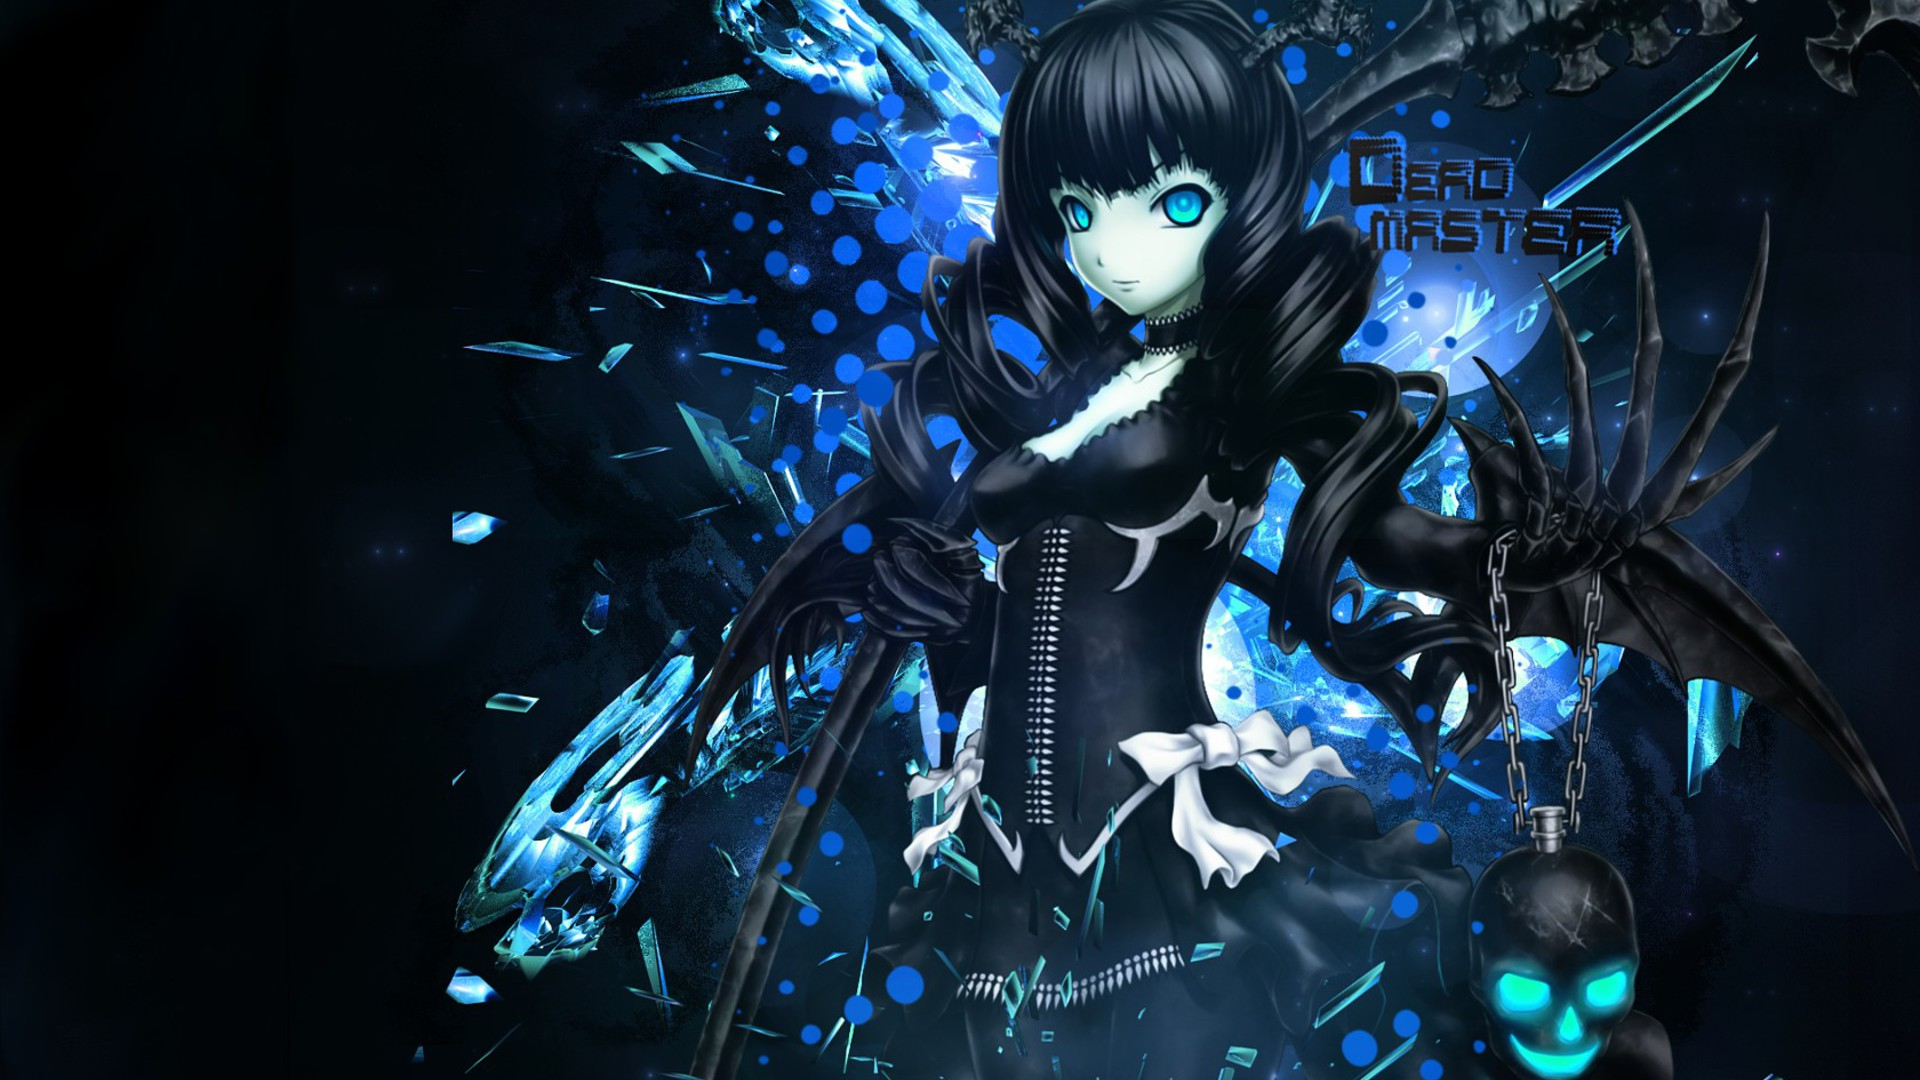 Blue dead master anime wallpaper 9968 - Blue anime wallpaper ...